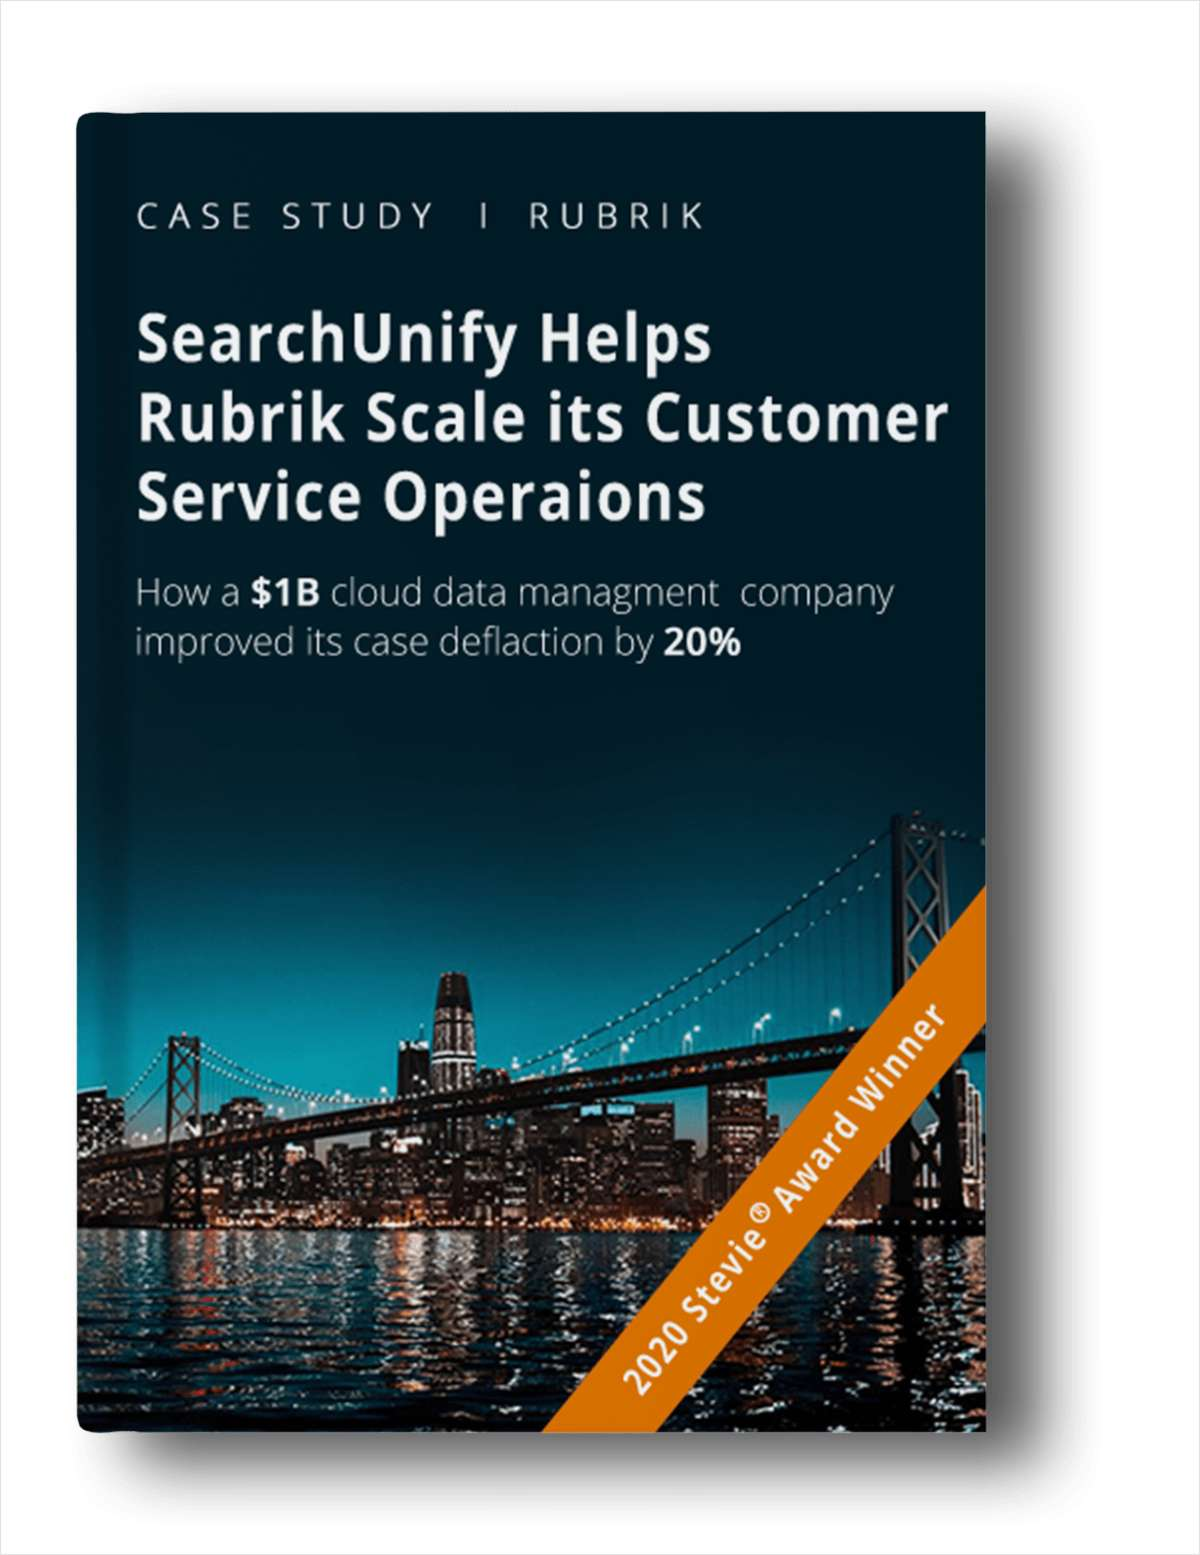 SearchUnify Helps Rubrik Scale its Customer Service Operations